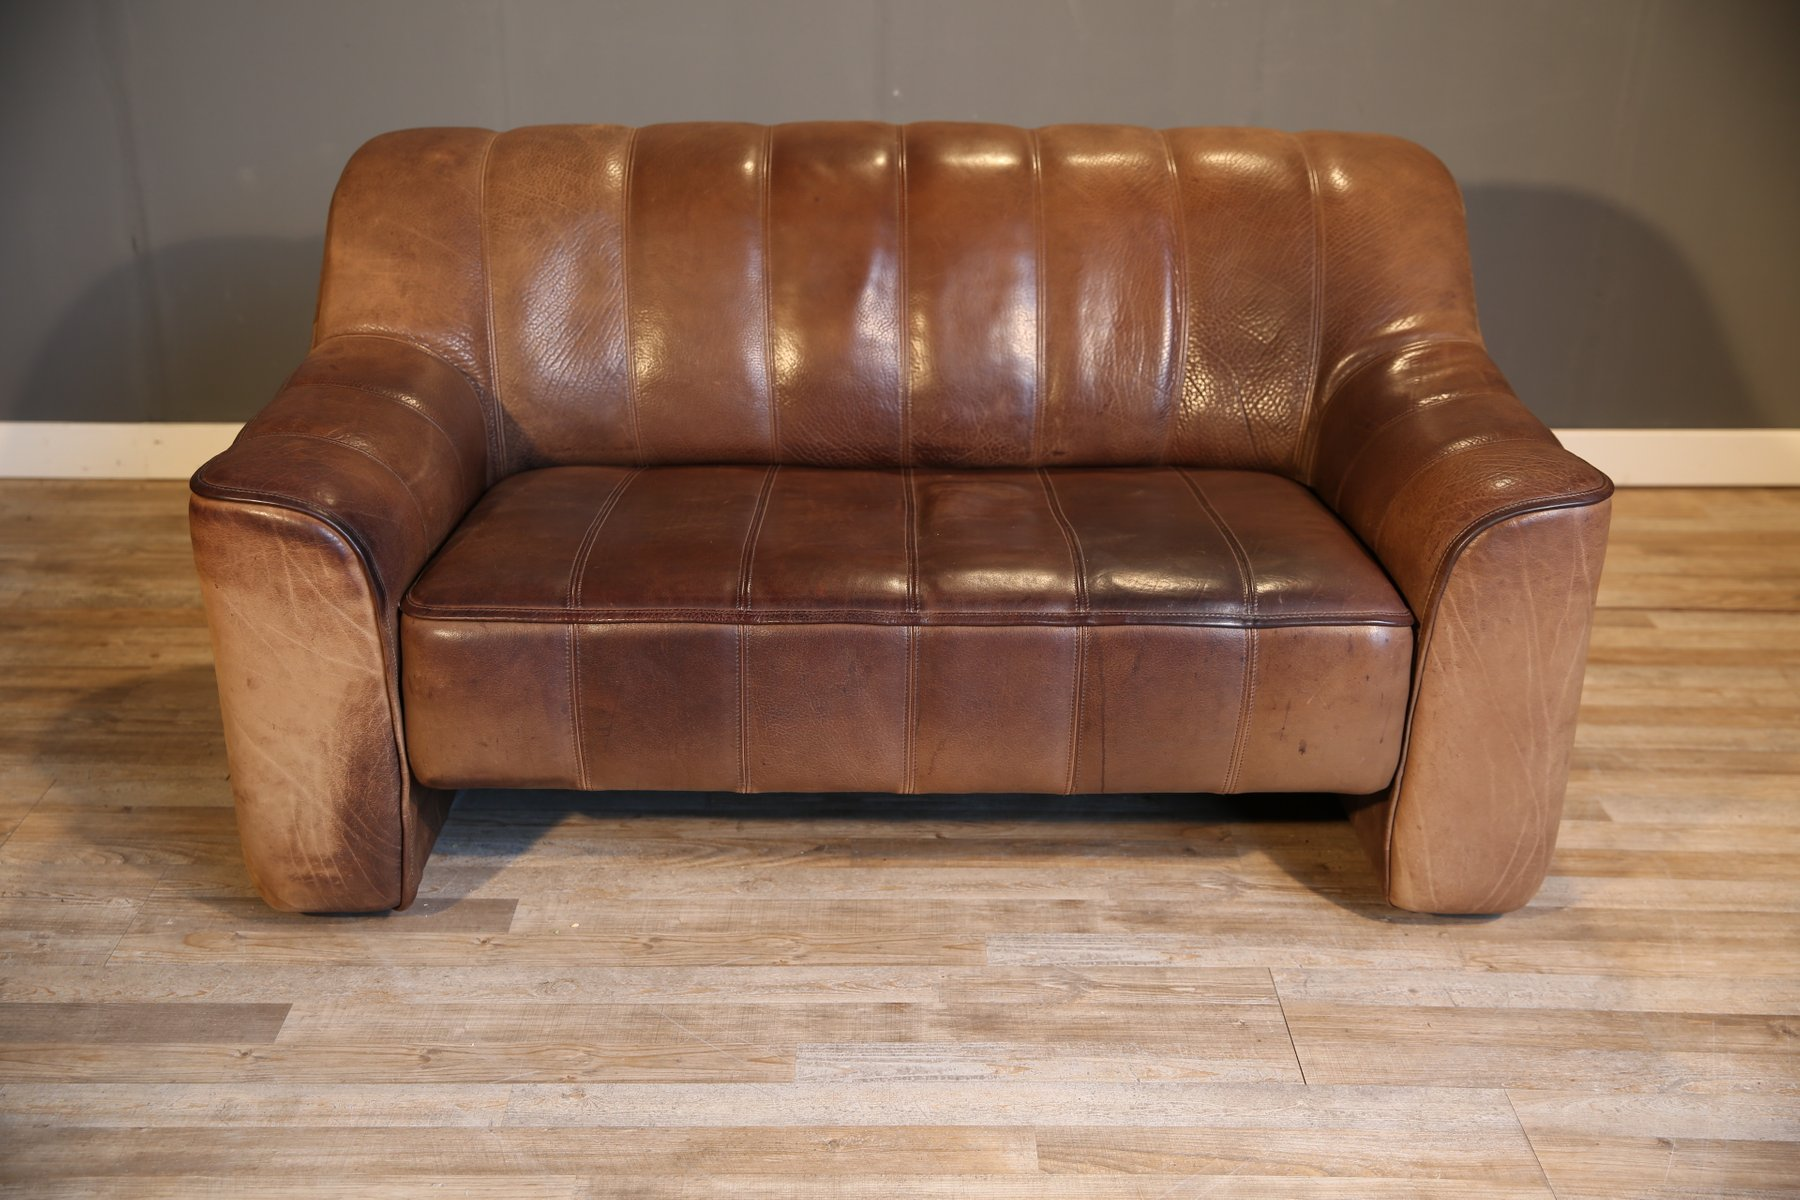 Ds 44 double seat leather sofa from de sede 1970s for for Double leather sofa